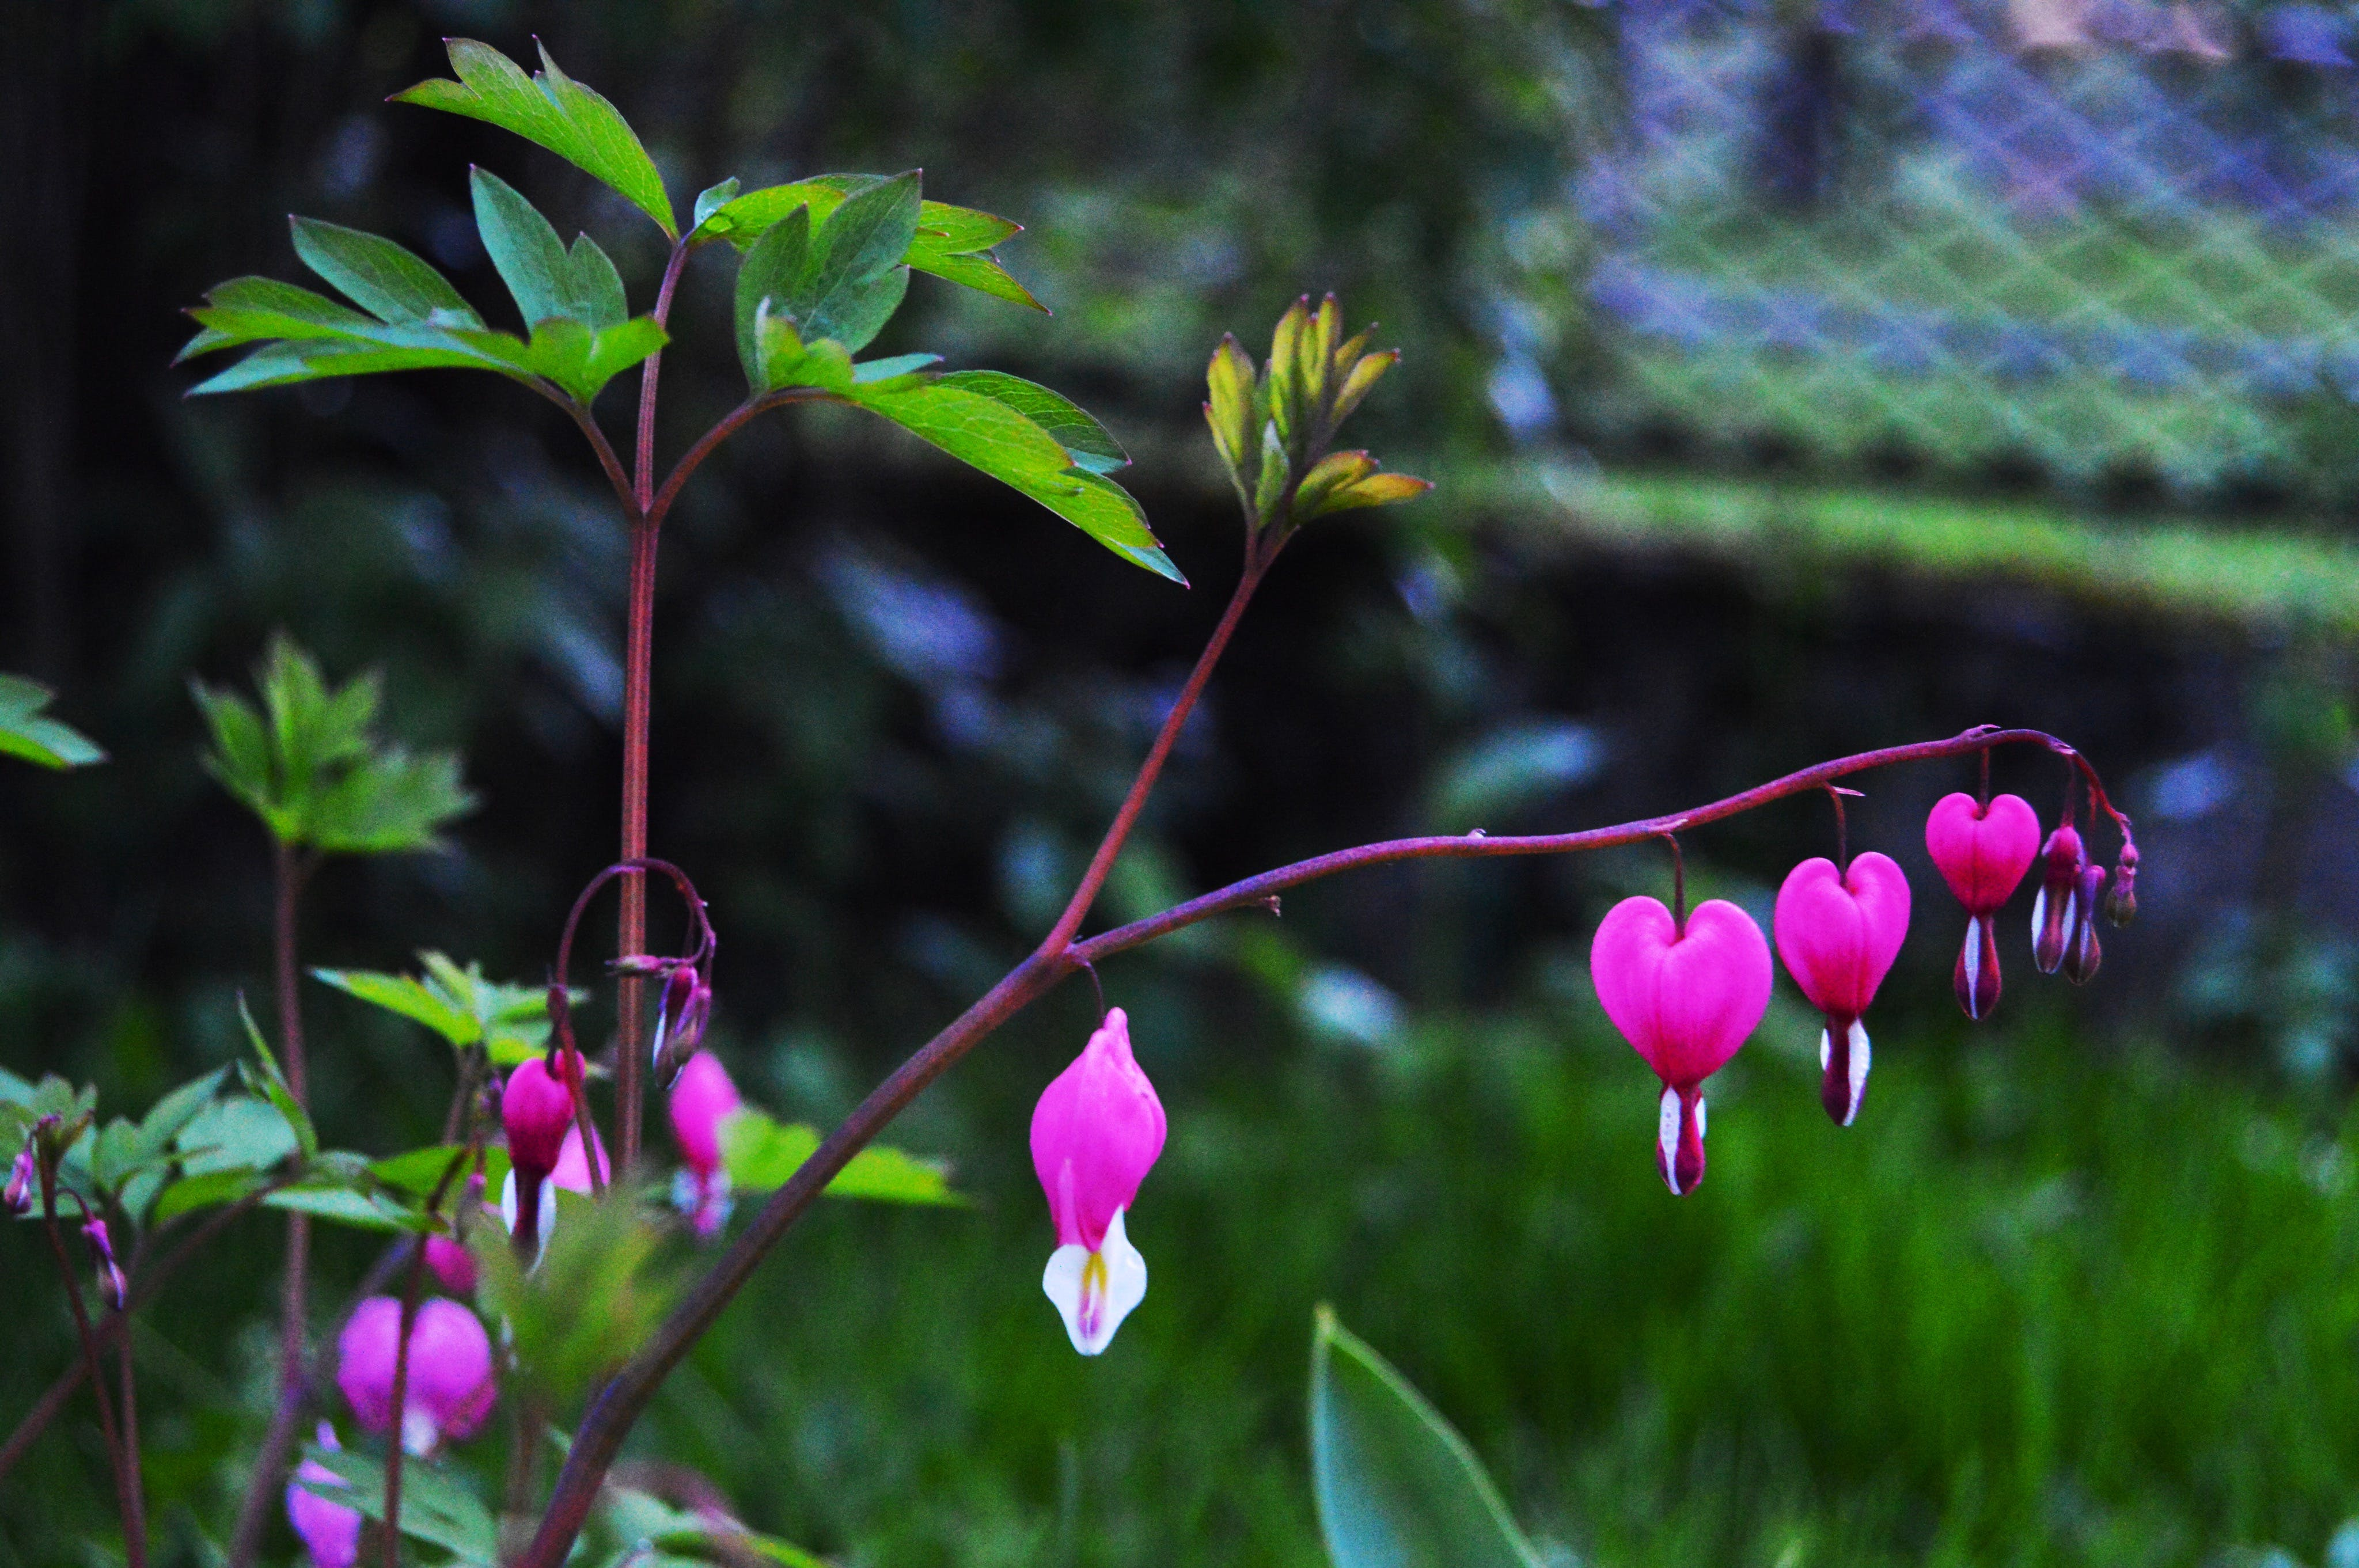 Pink and White Bleeding Heart Flowers Selective-focus Photography at Daytime